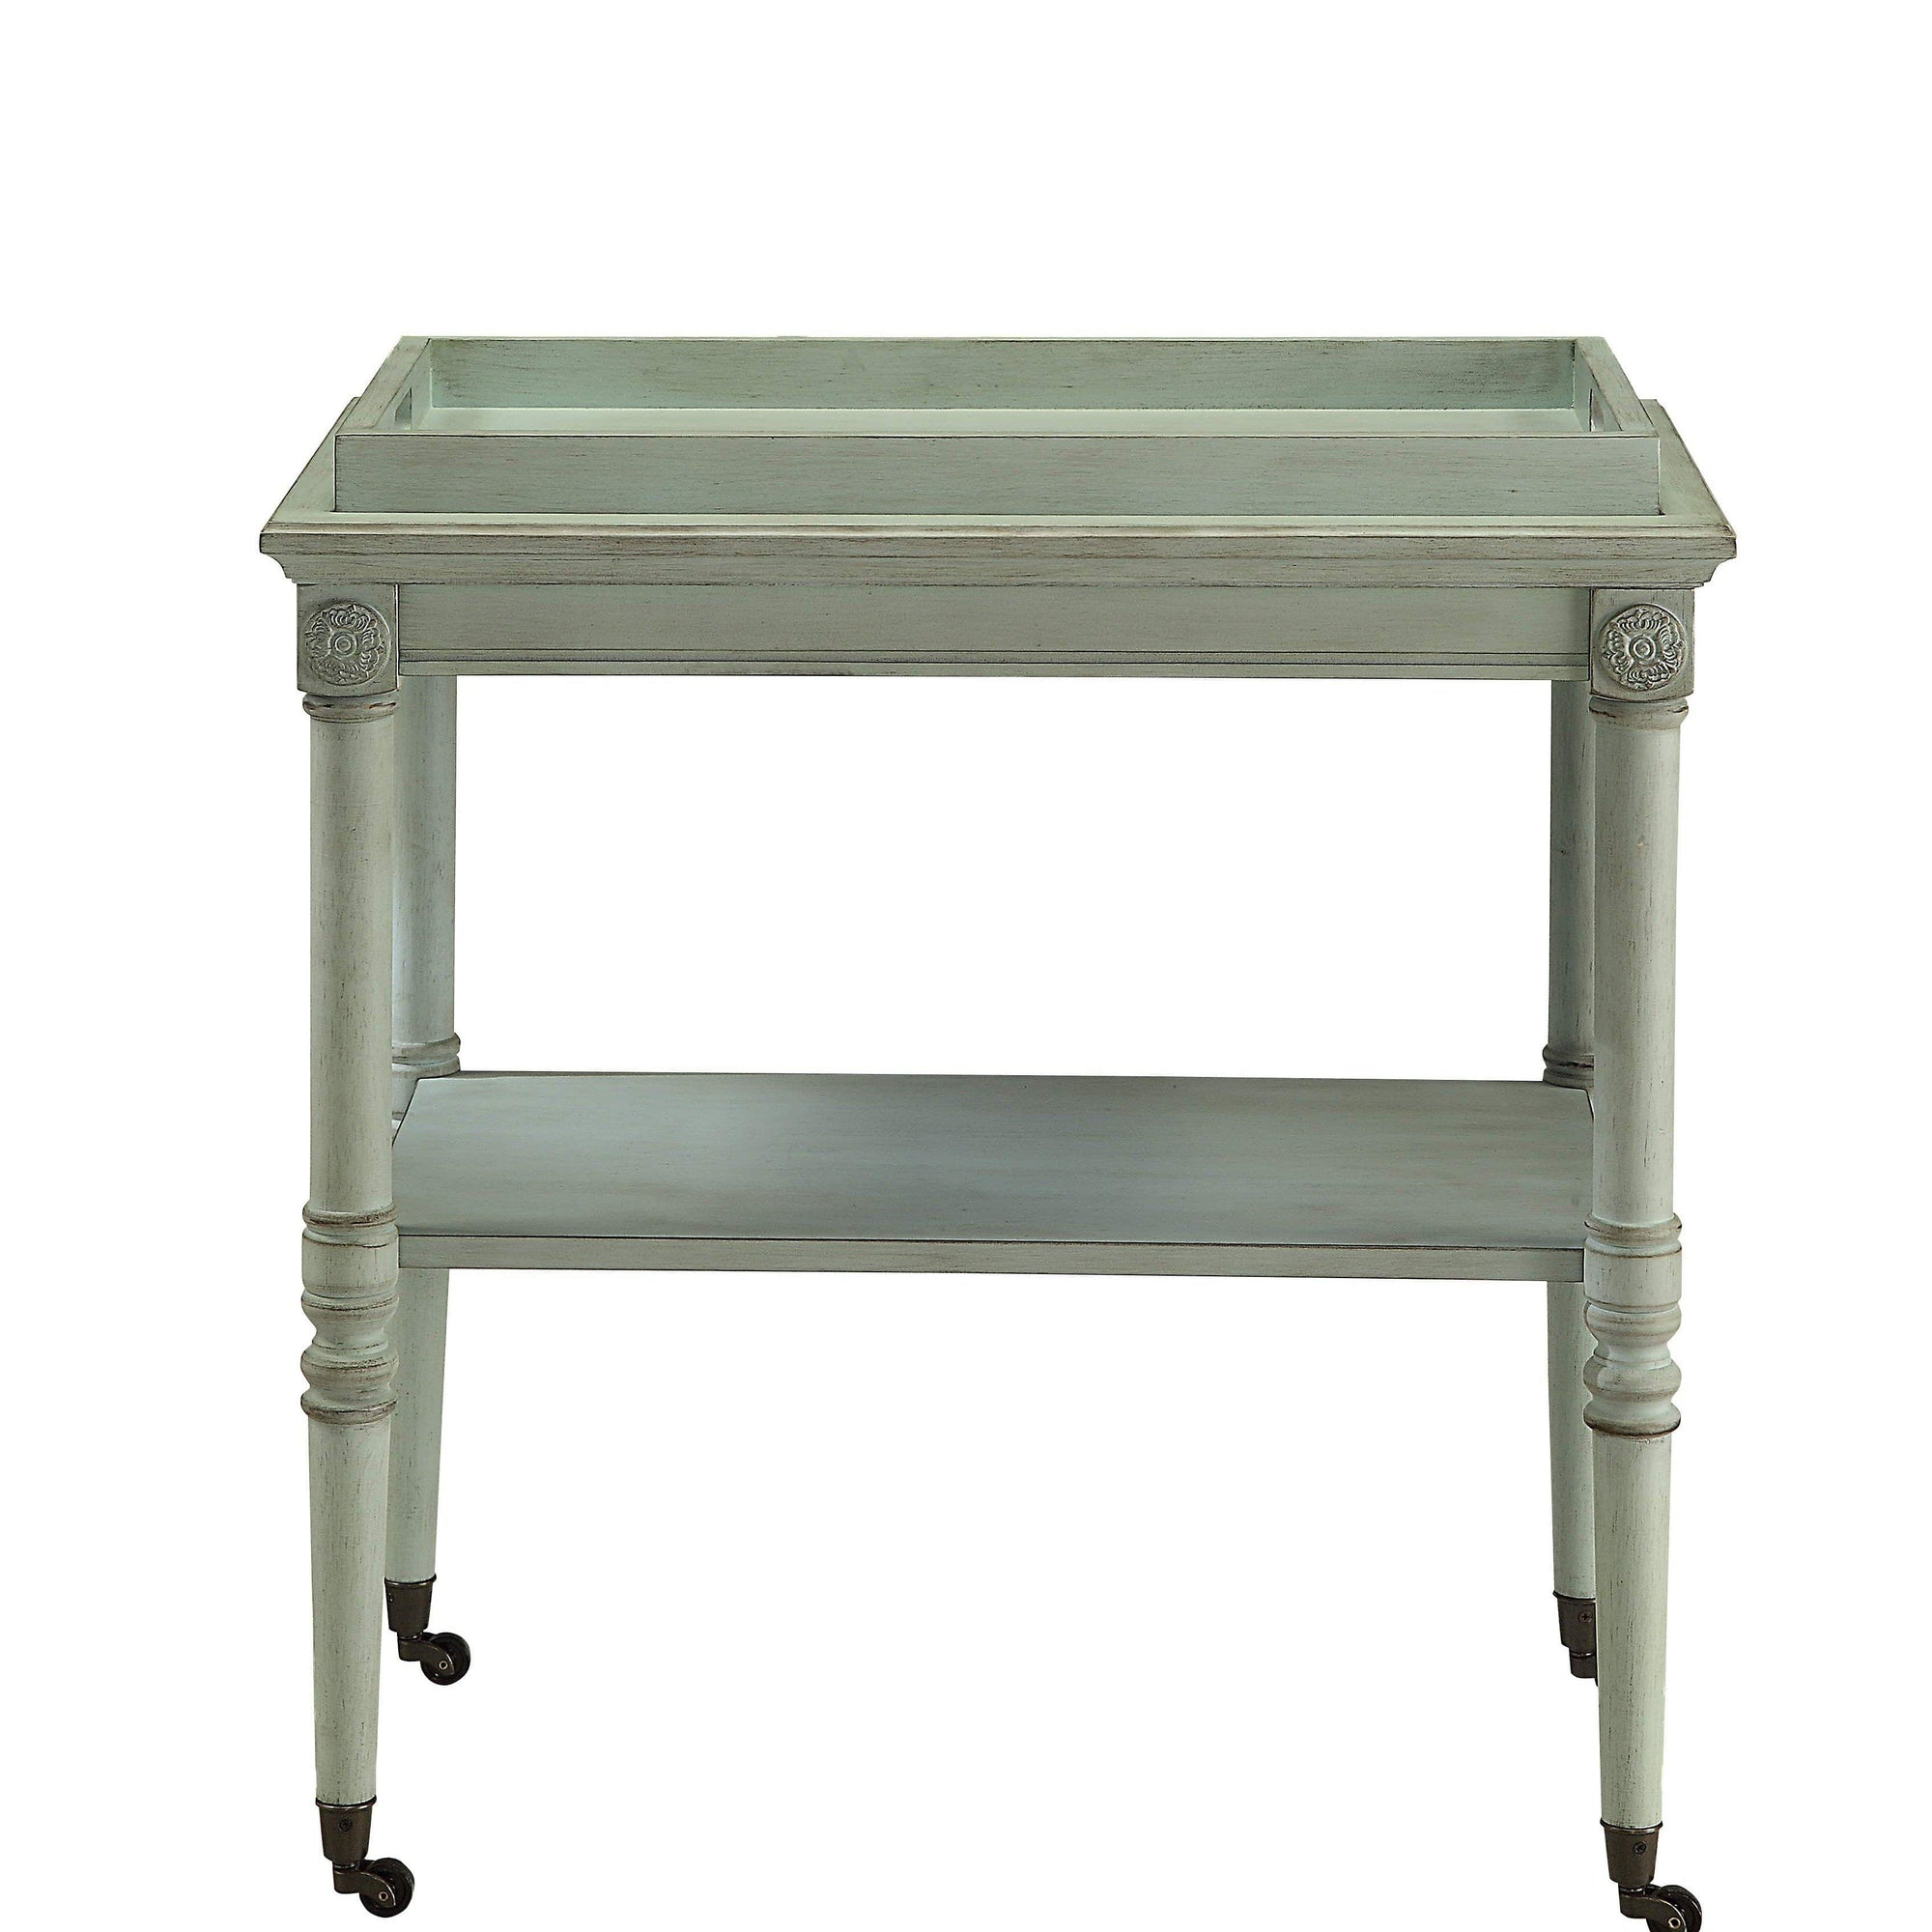 Green Antique French Tray Table